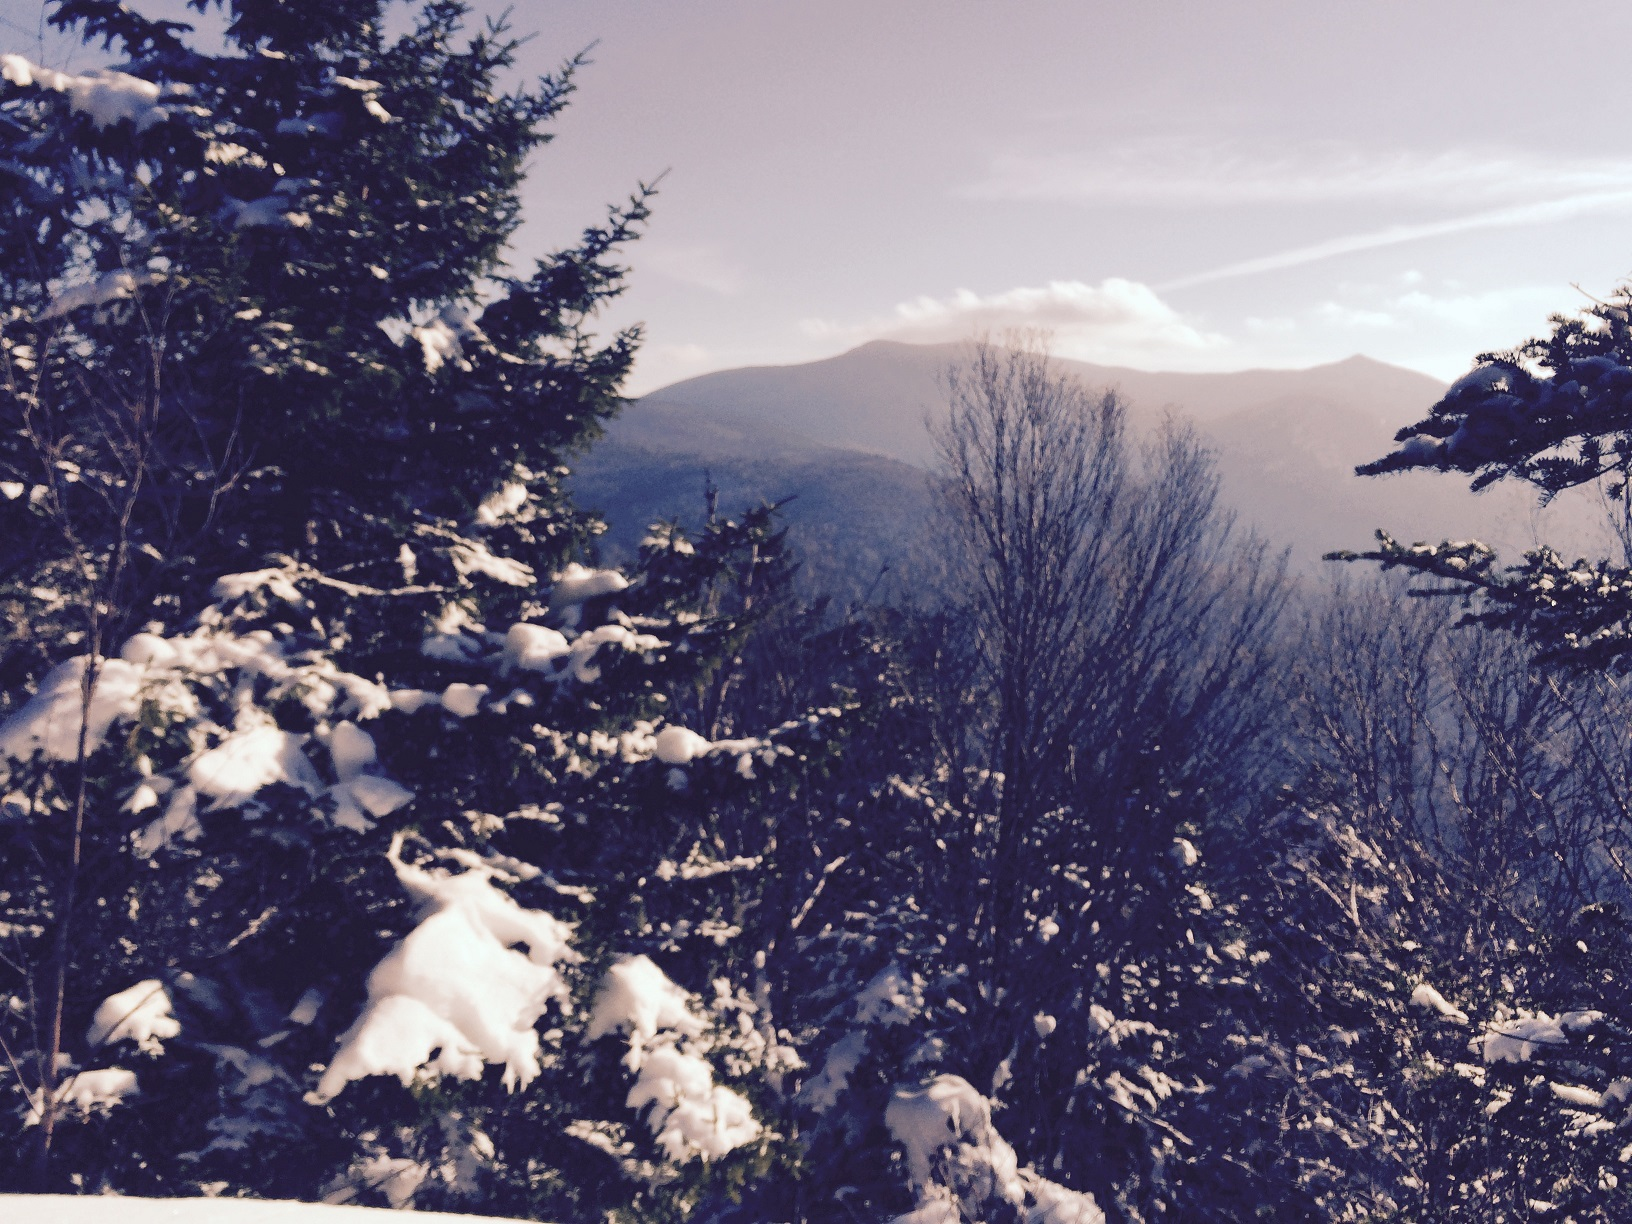 SnowsMtn views only SMALLER 02-22-15